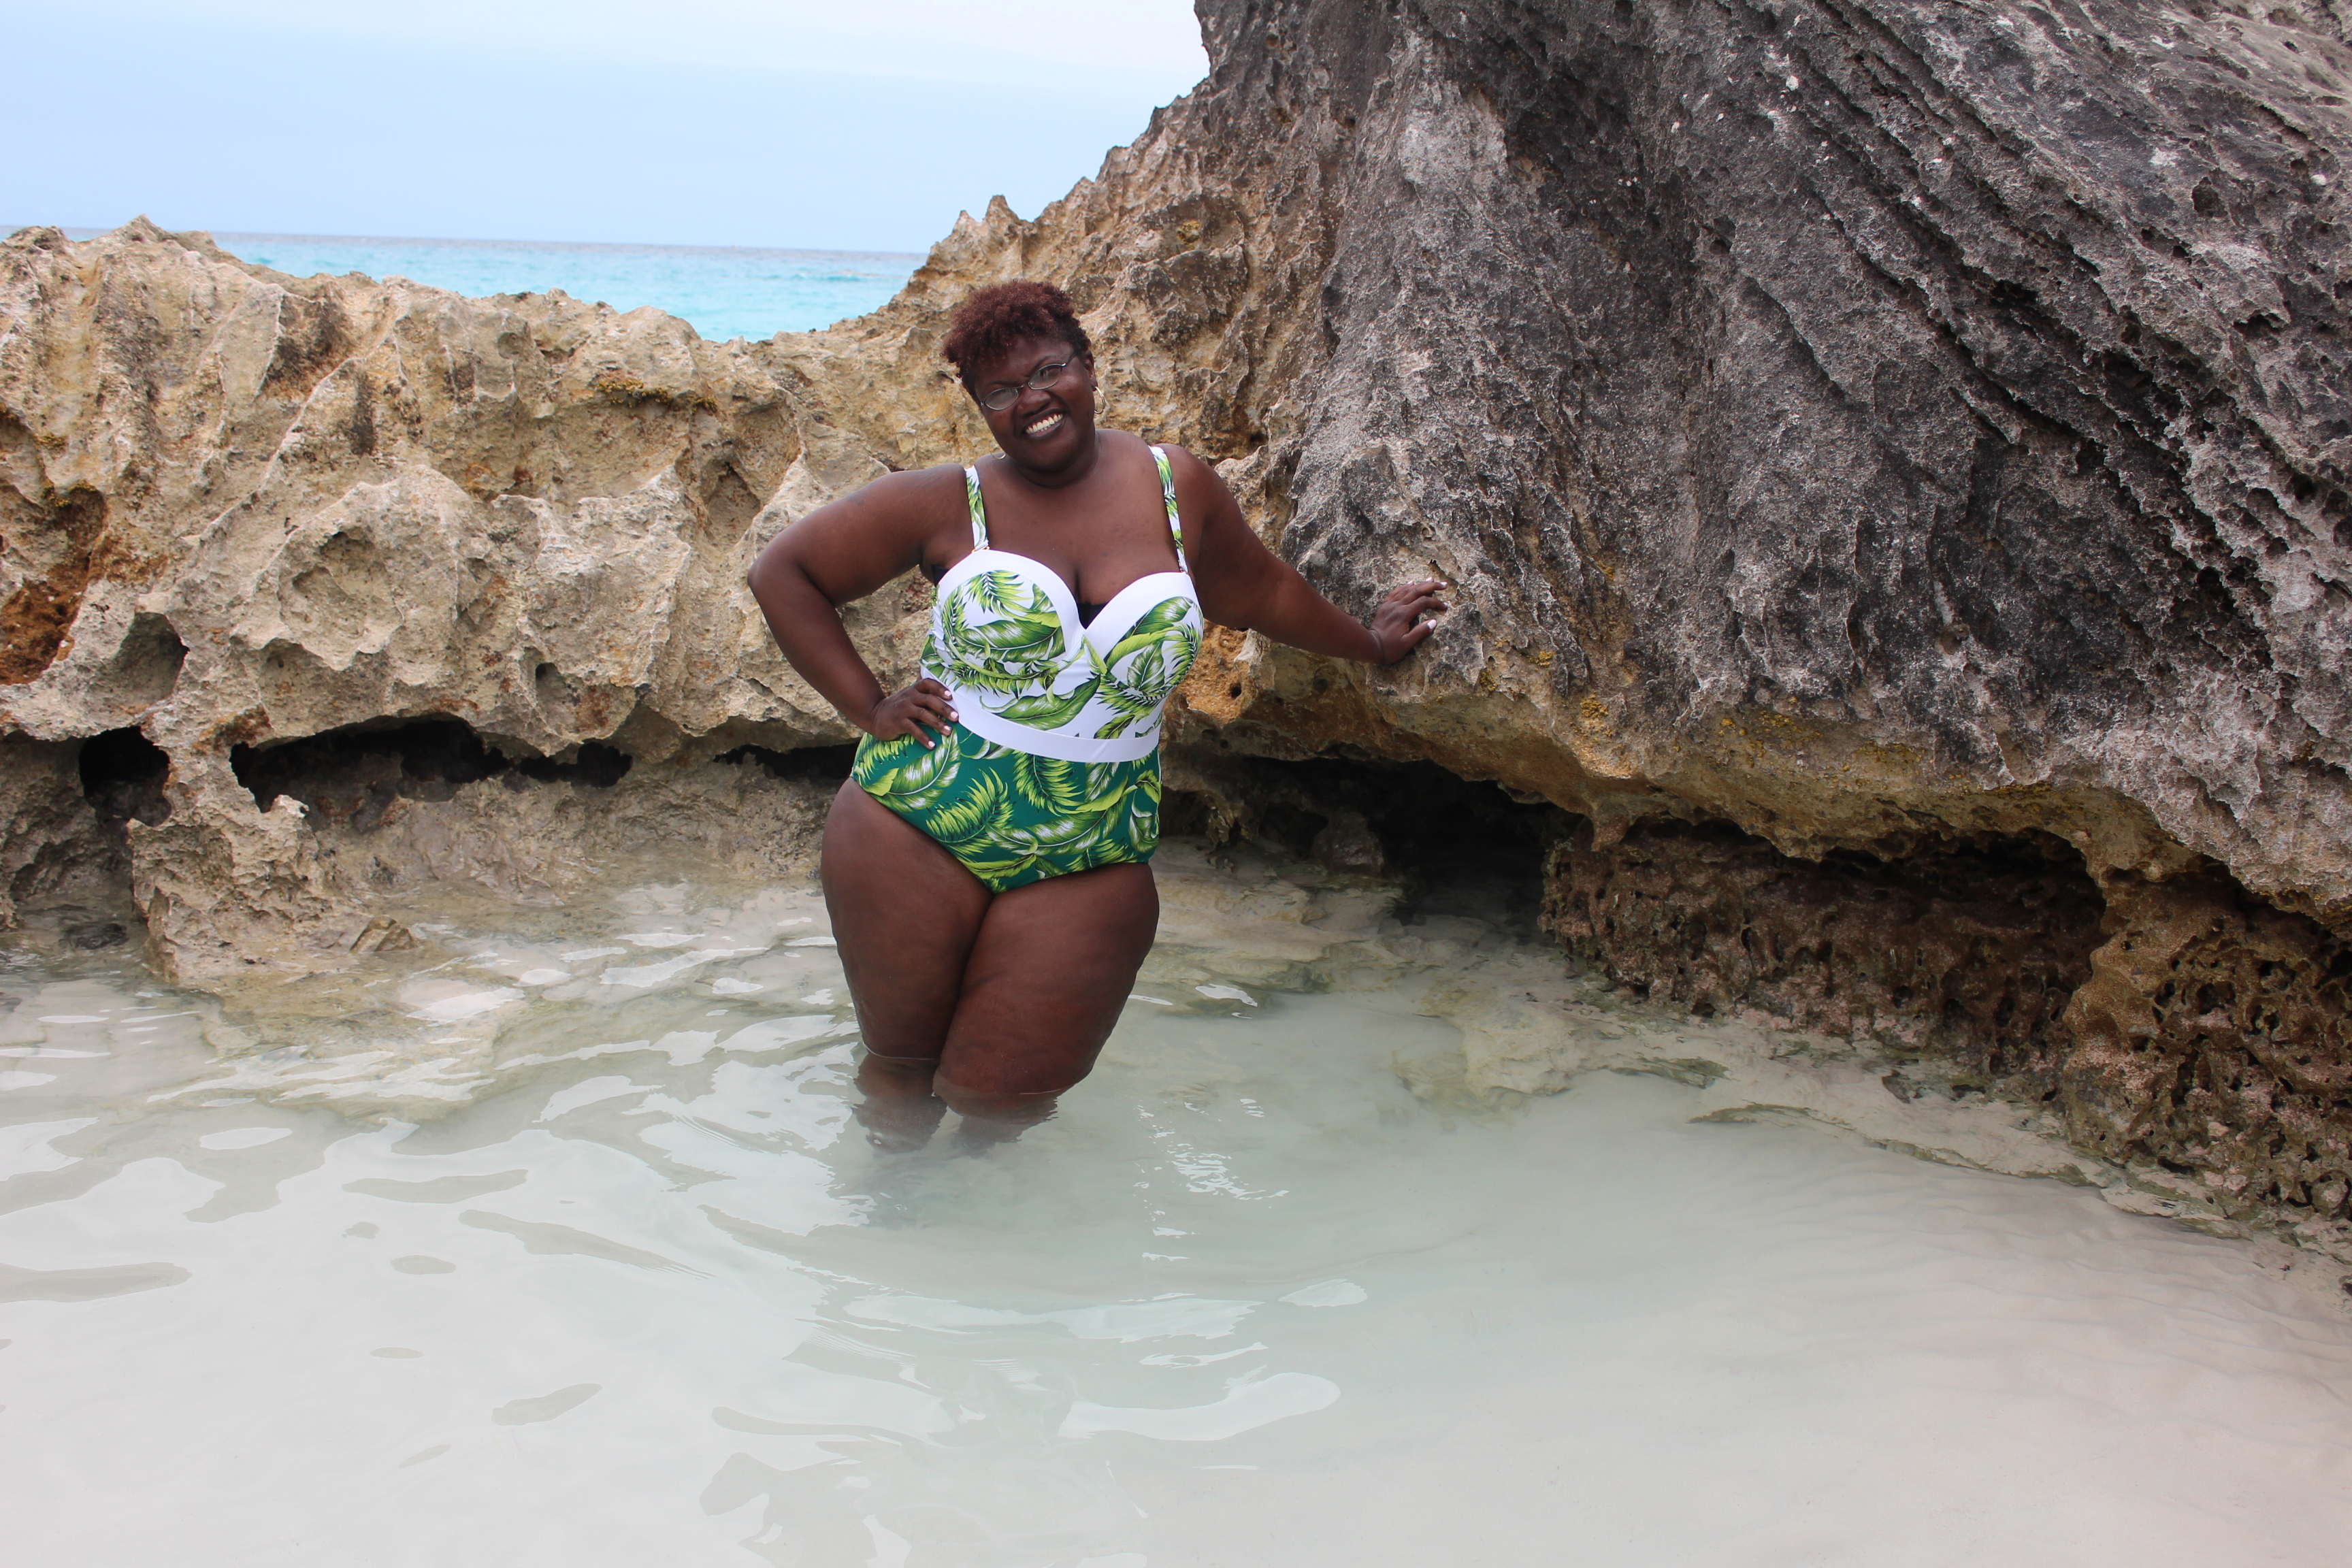 curvy, curvy women, curvy girls, curvy swimwear, plus size swimwear, plus size bathing suits, one piece plus size bathing suits, palm print bathing suits, palm prints, grown and curvy woman, grown and curvy woman blog,  plus size fashion, summer trends, plus size blogger, plus size blogs